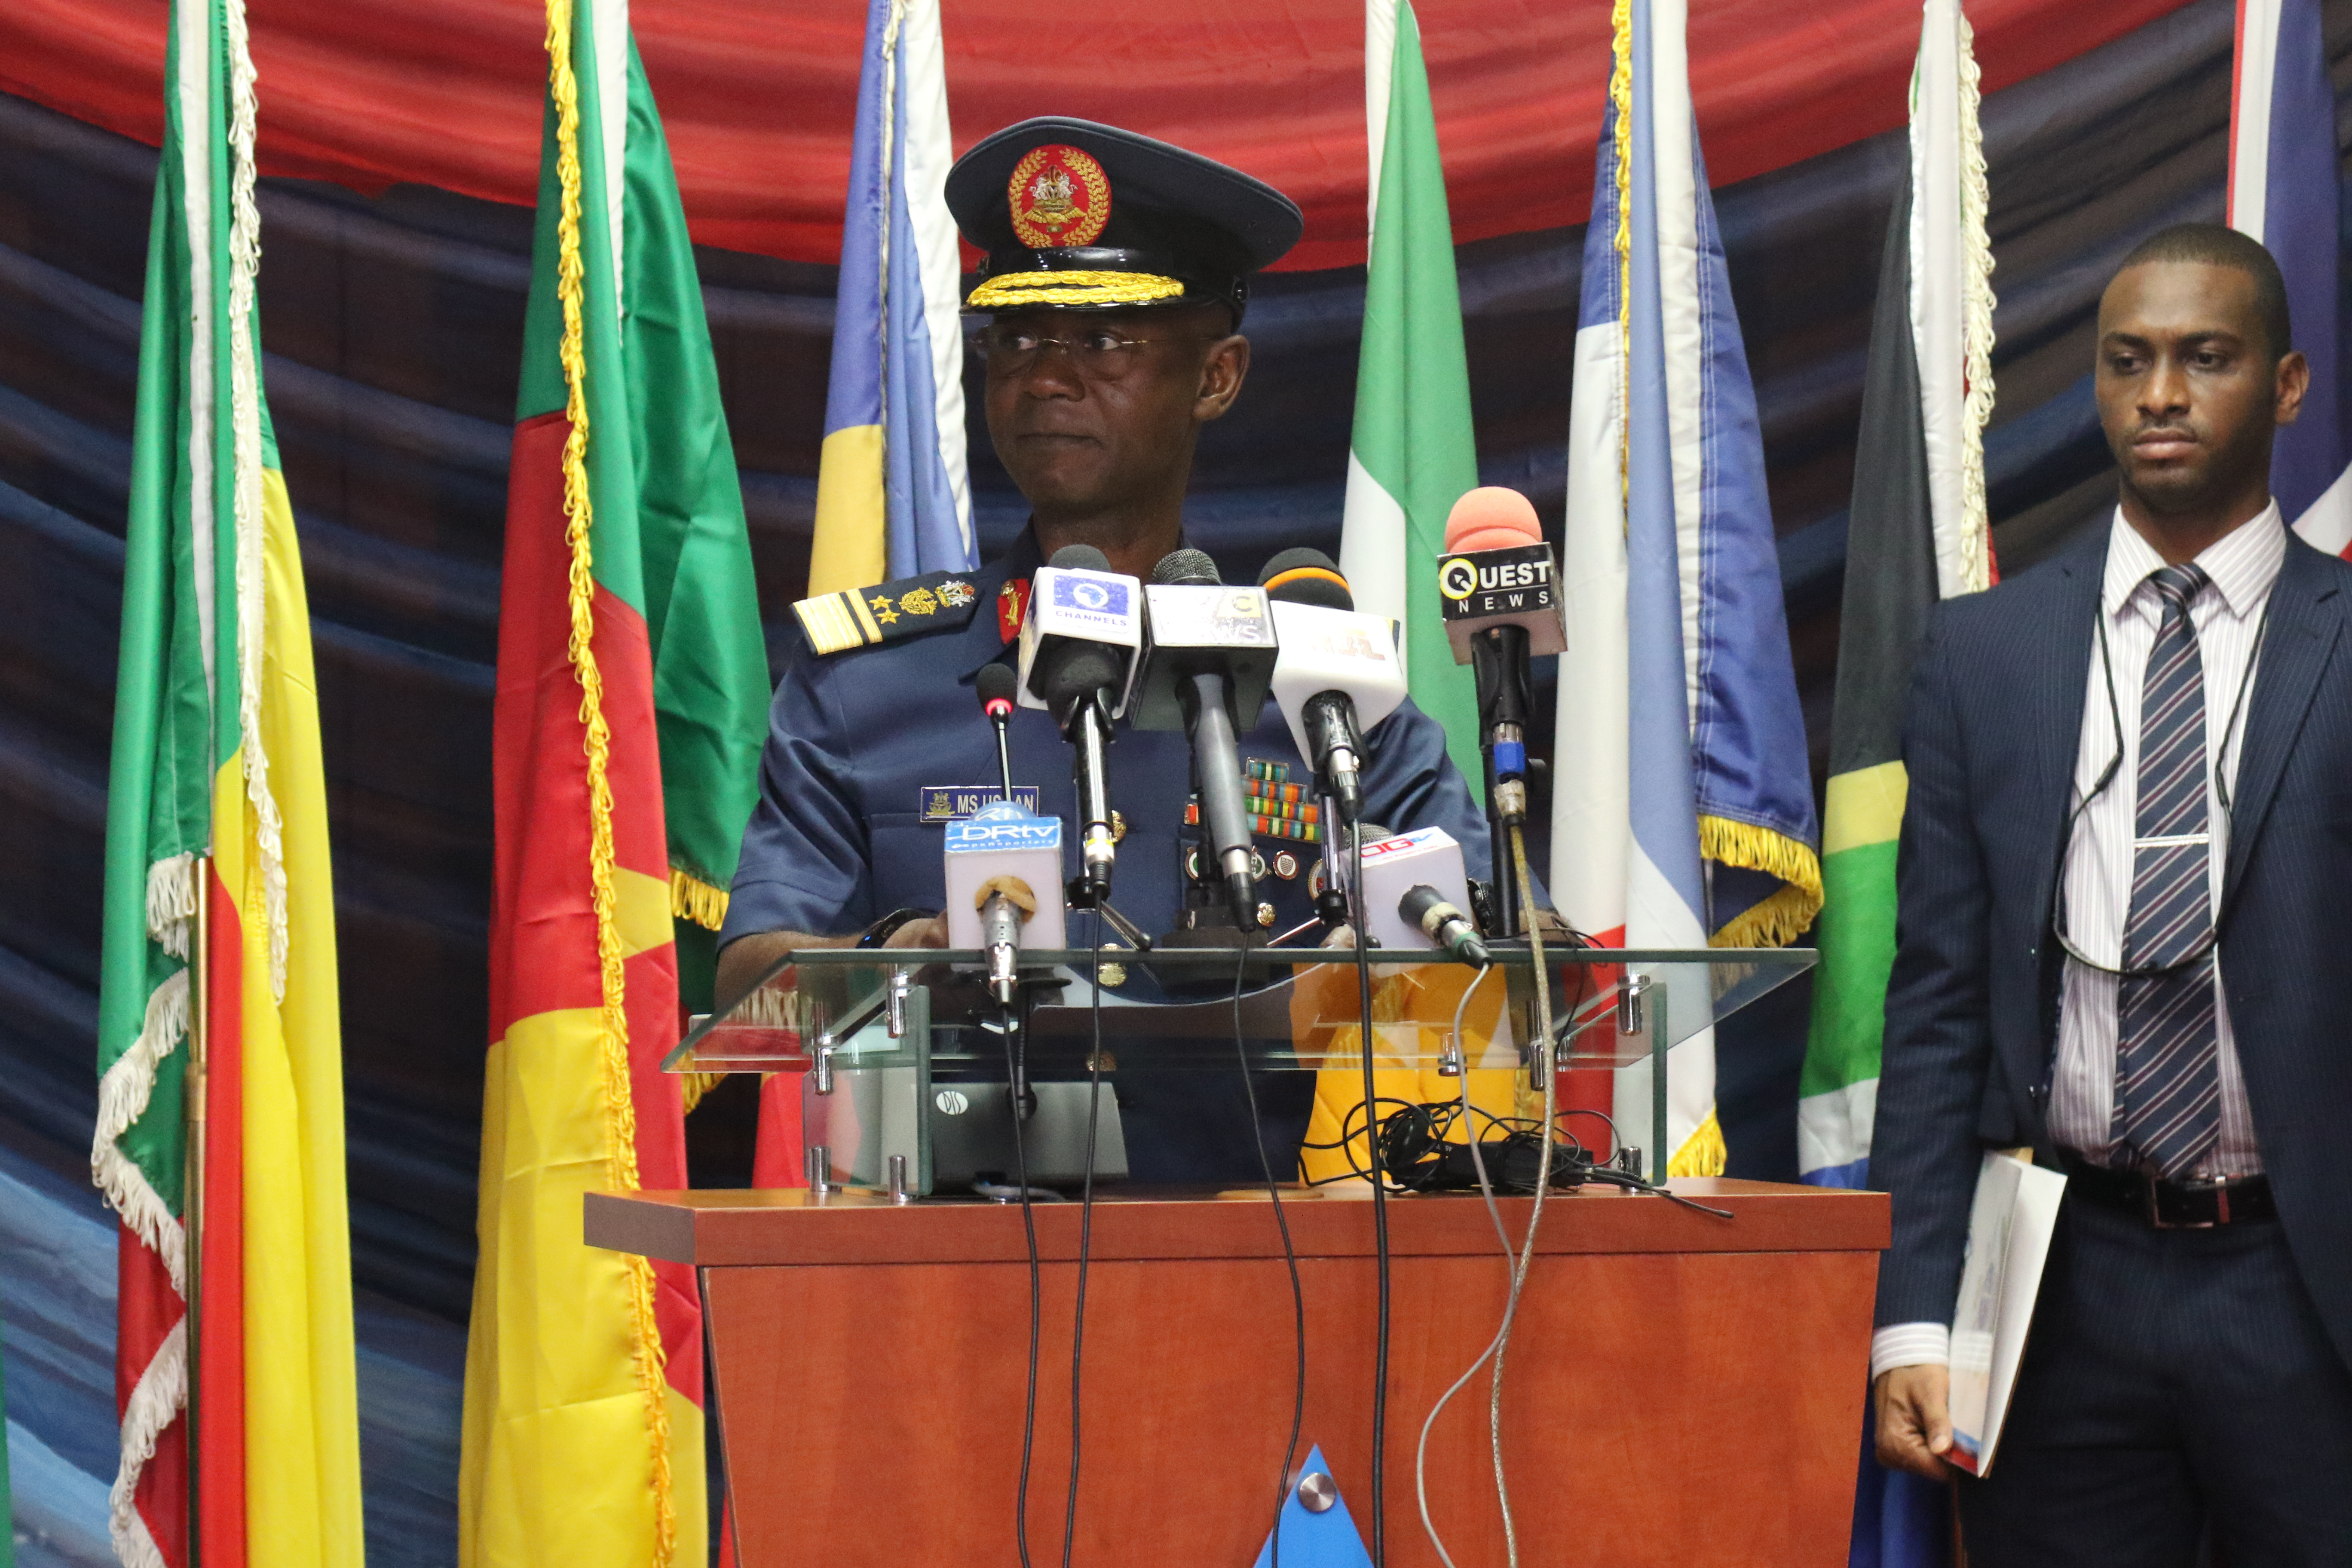 ABUJA, Nigeria – Air Vice Marshall M.S. Usman, Nigerian Chief of Defense Intelligence, delivers remarks during the opening ceremony of the Lake Chad Basin Directors of Military Intelligence Conference June 19, 2018 in Abuja, Nigeria.